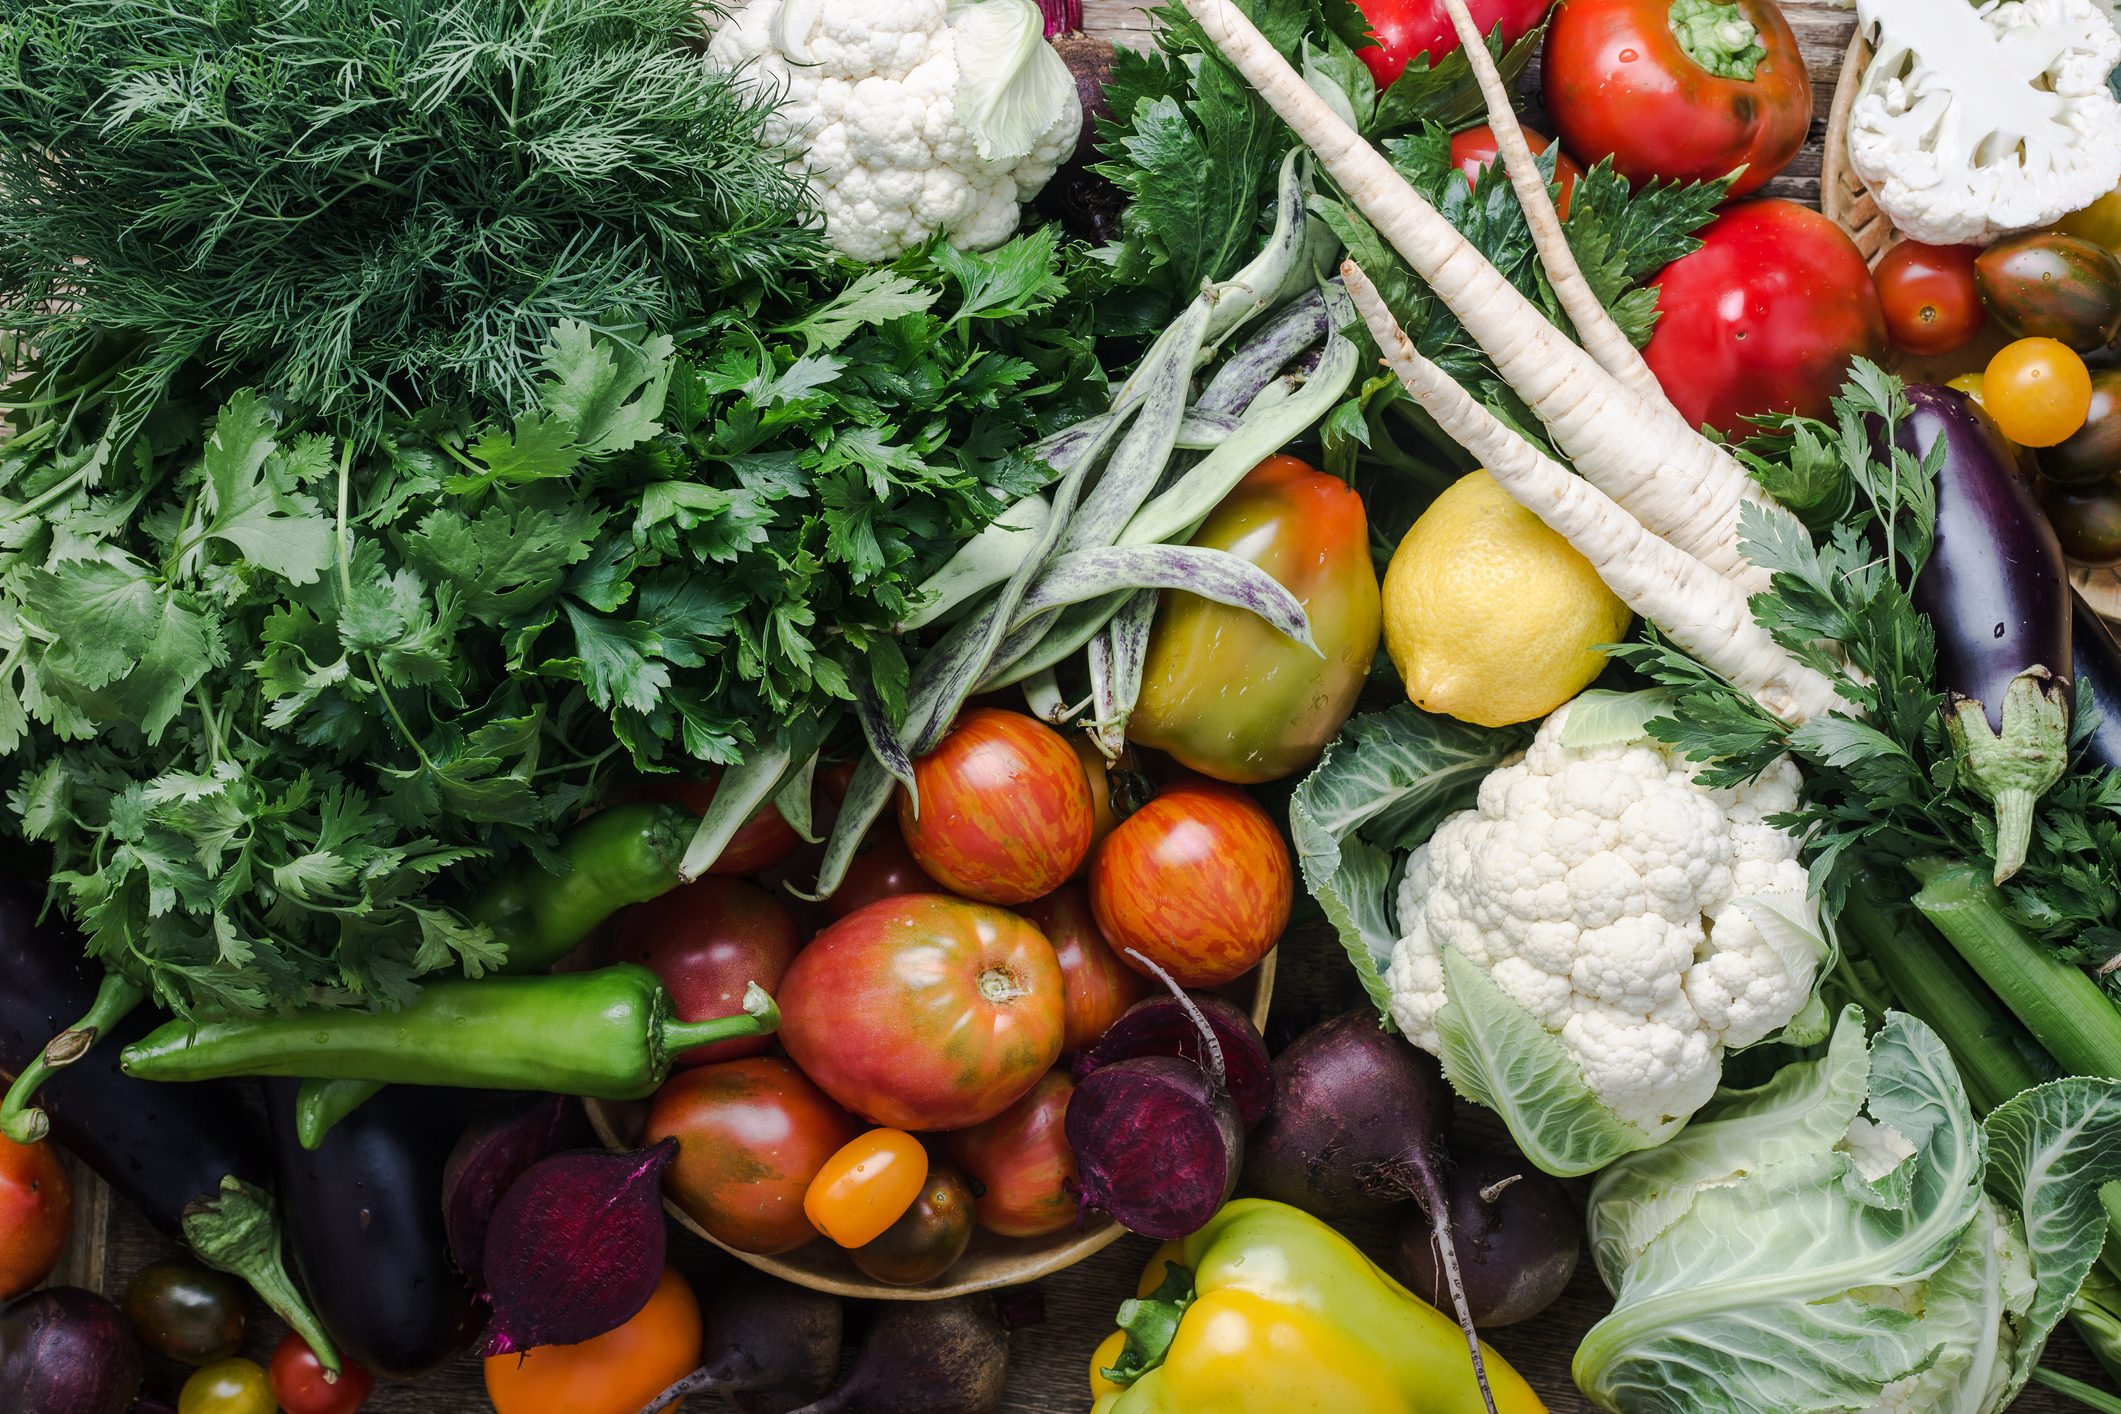 Colorful variety, plant based food, homegrown crop